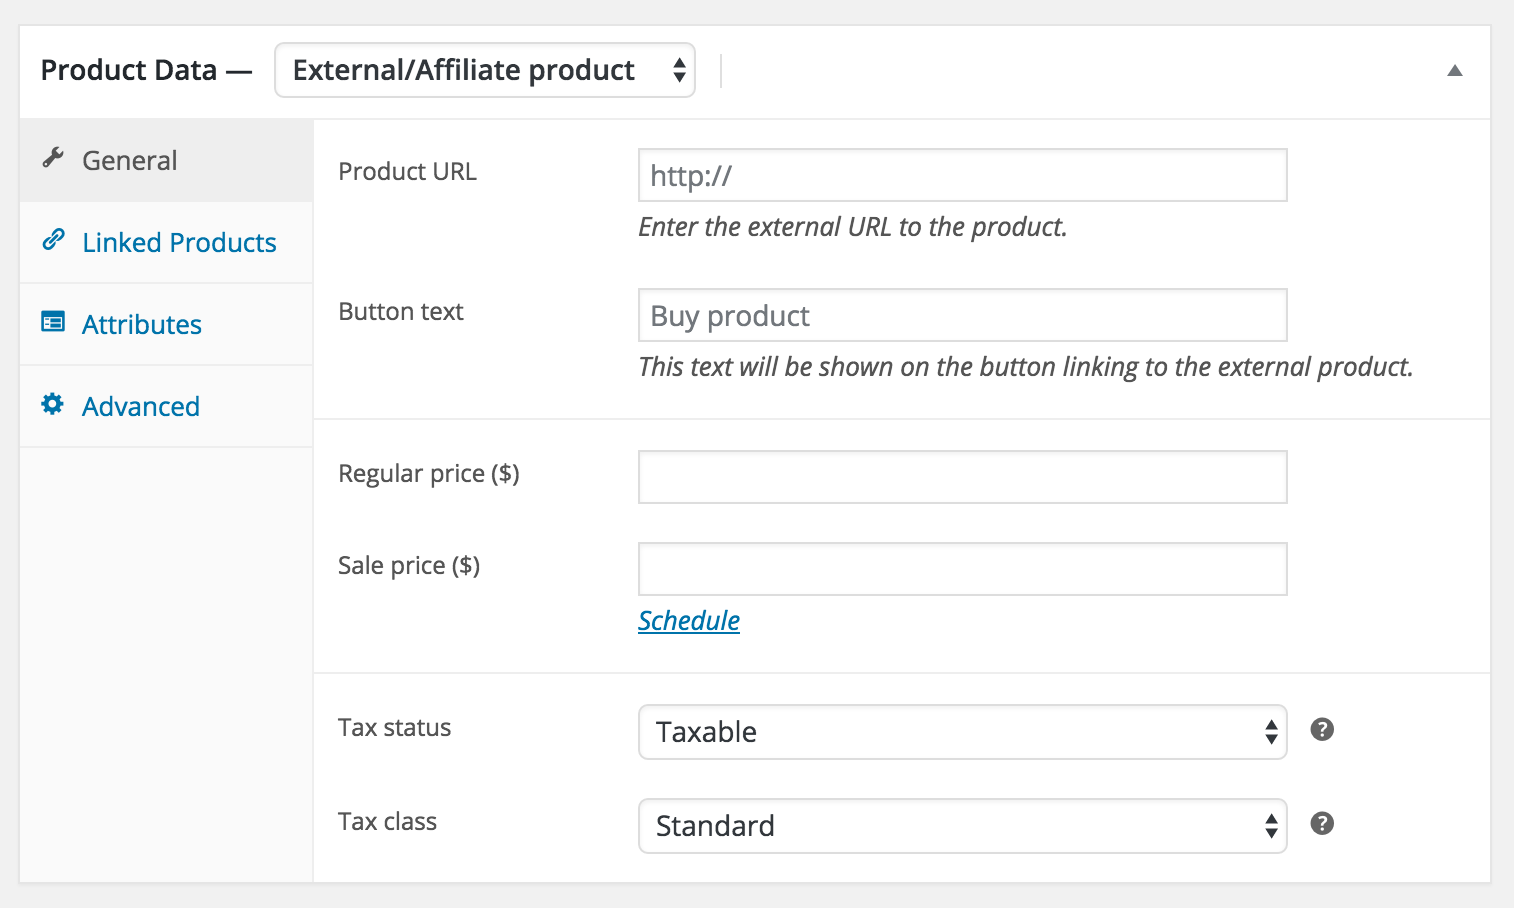 Selling affiliate products? No problem: select the correct product type in WooCommerce and you'll be all set.